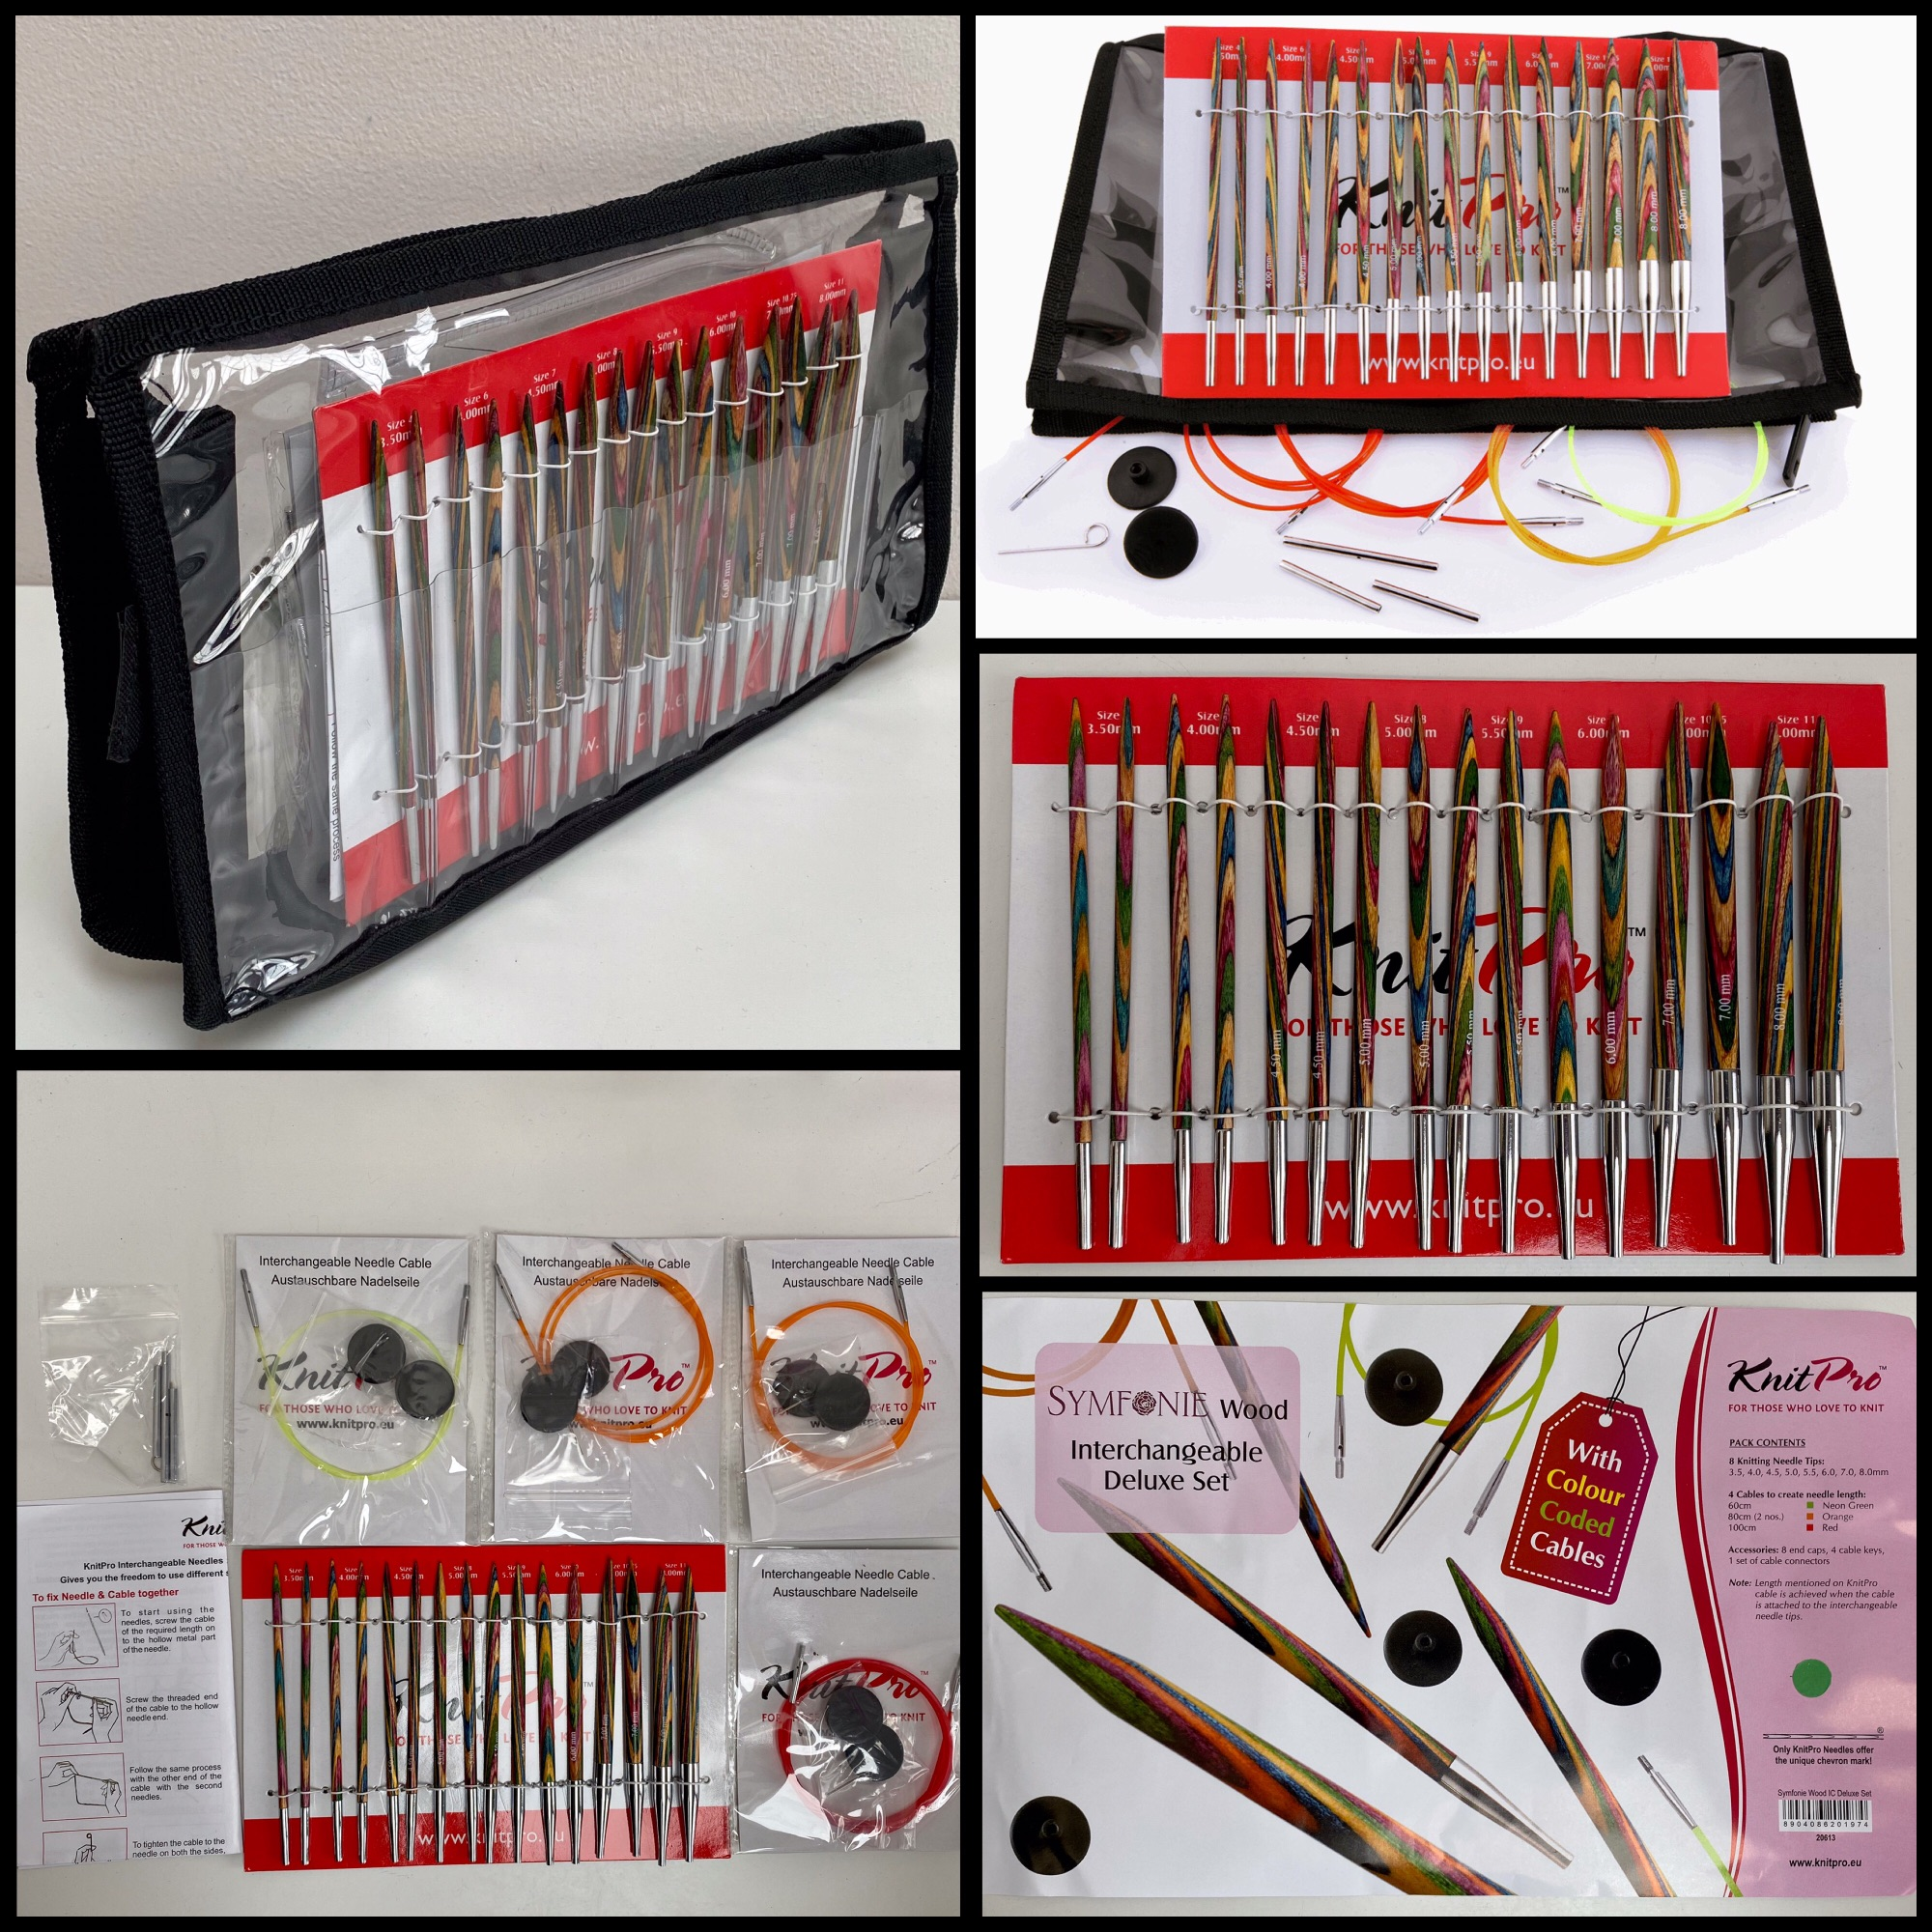 KnitPro Symfonie Wood Interchangeable Deluxe Set of 8 knitting needles and